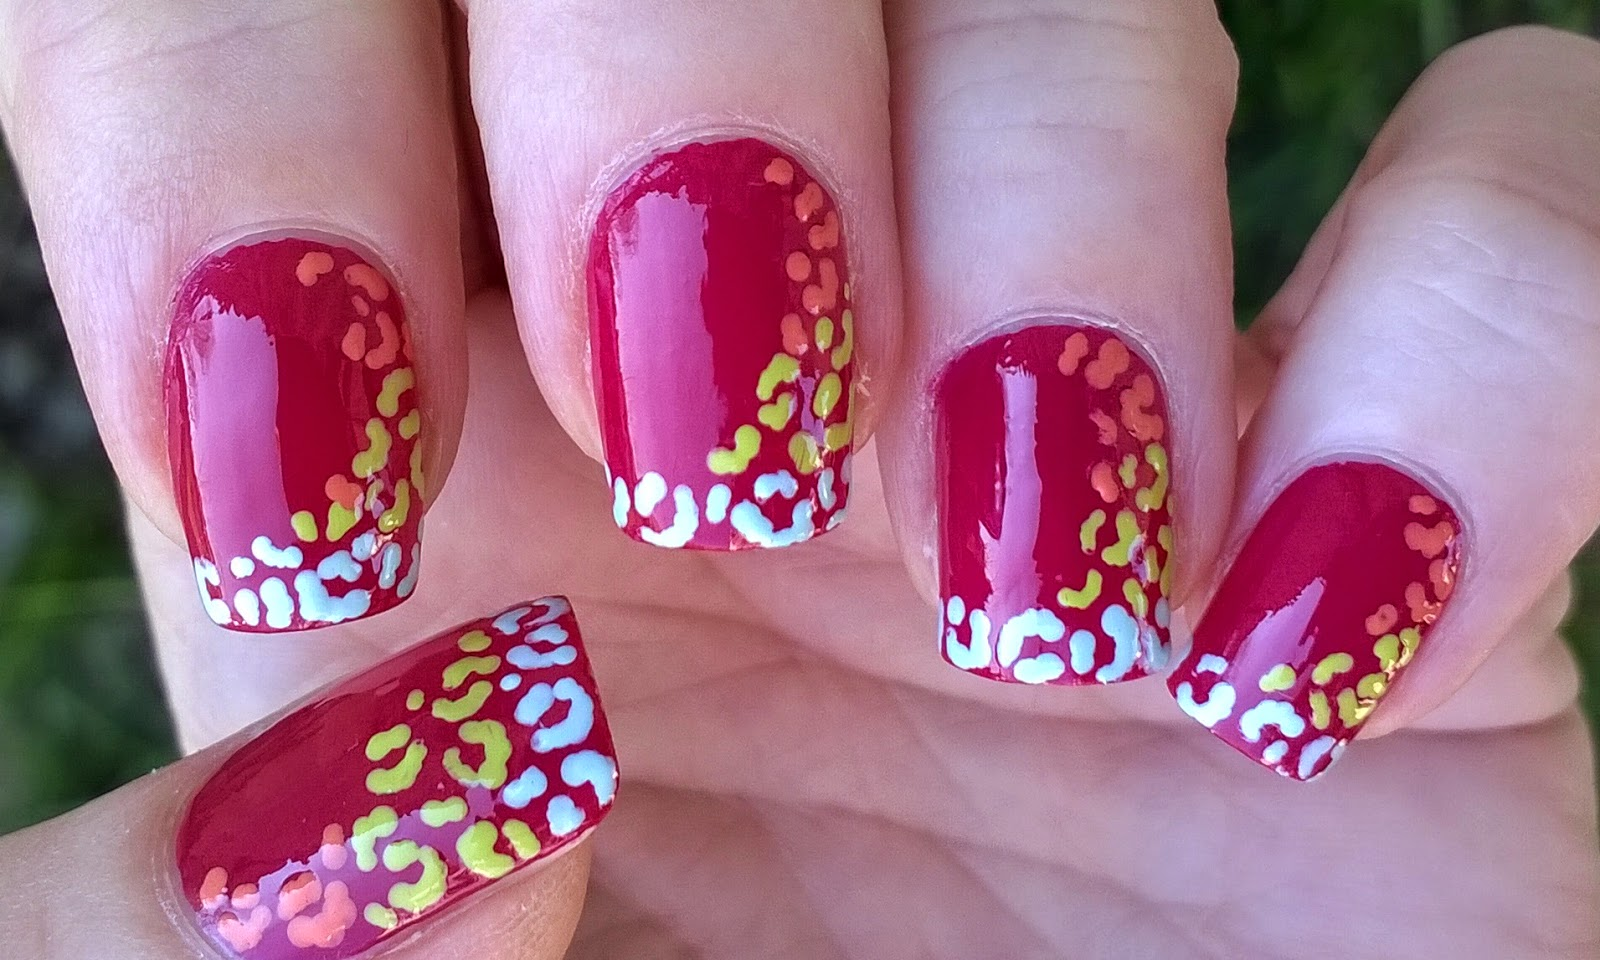 Life World Women: Colorful leopard nails - Toothpick nail art